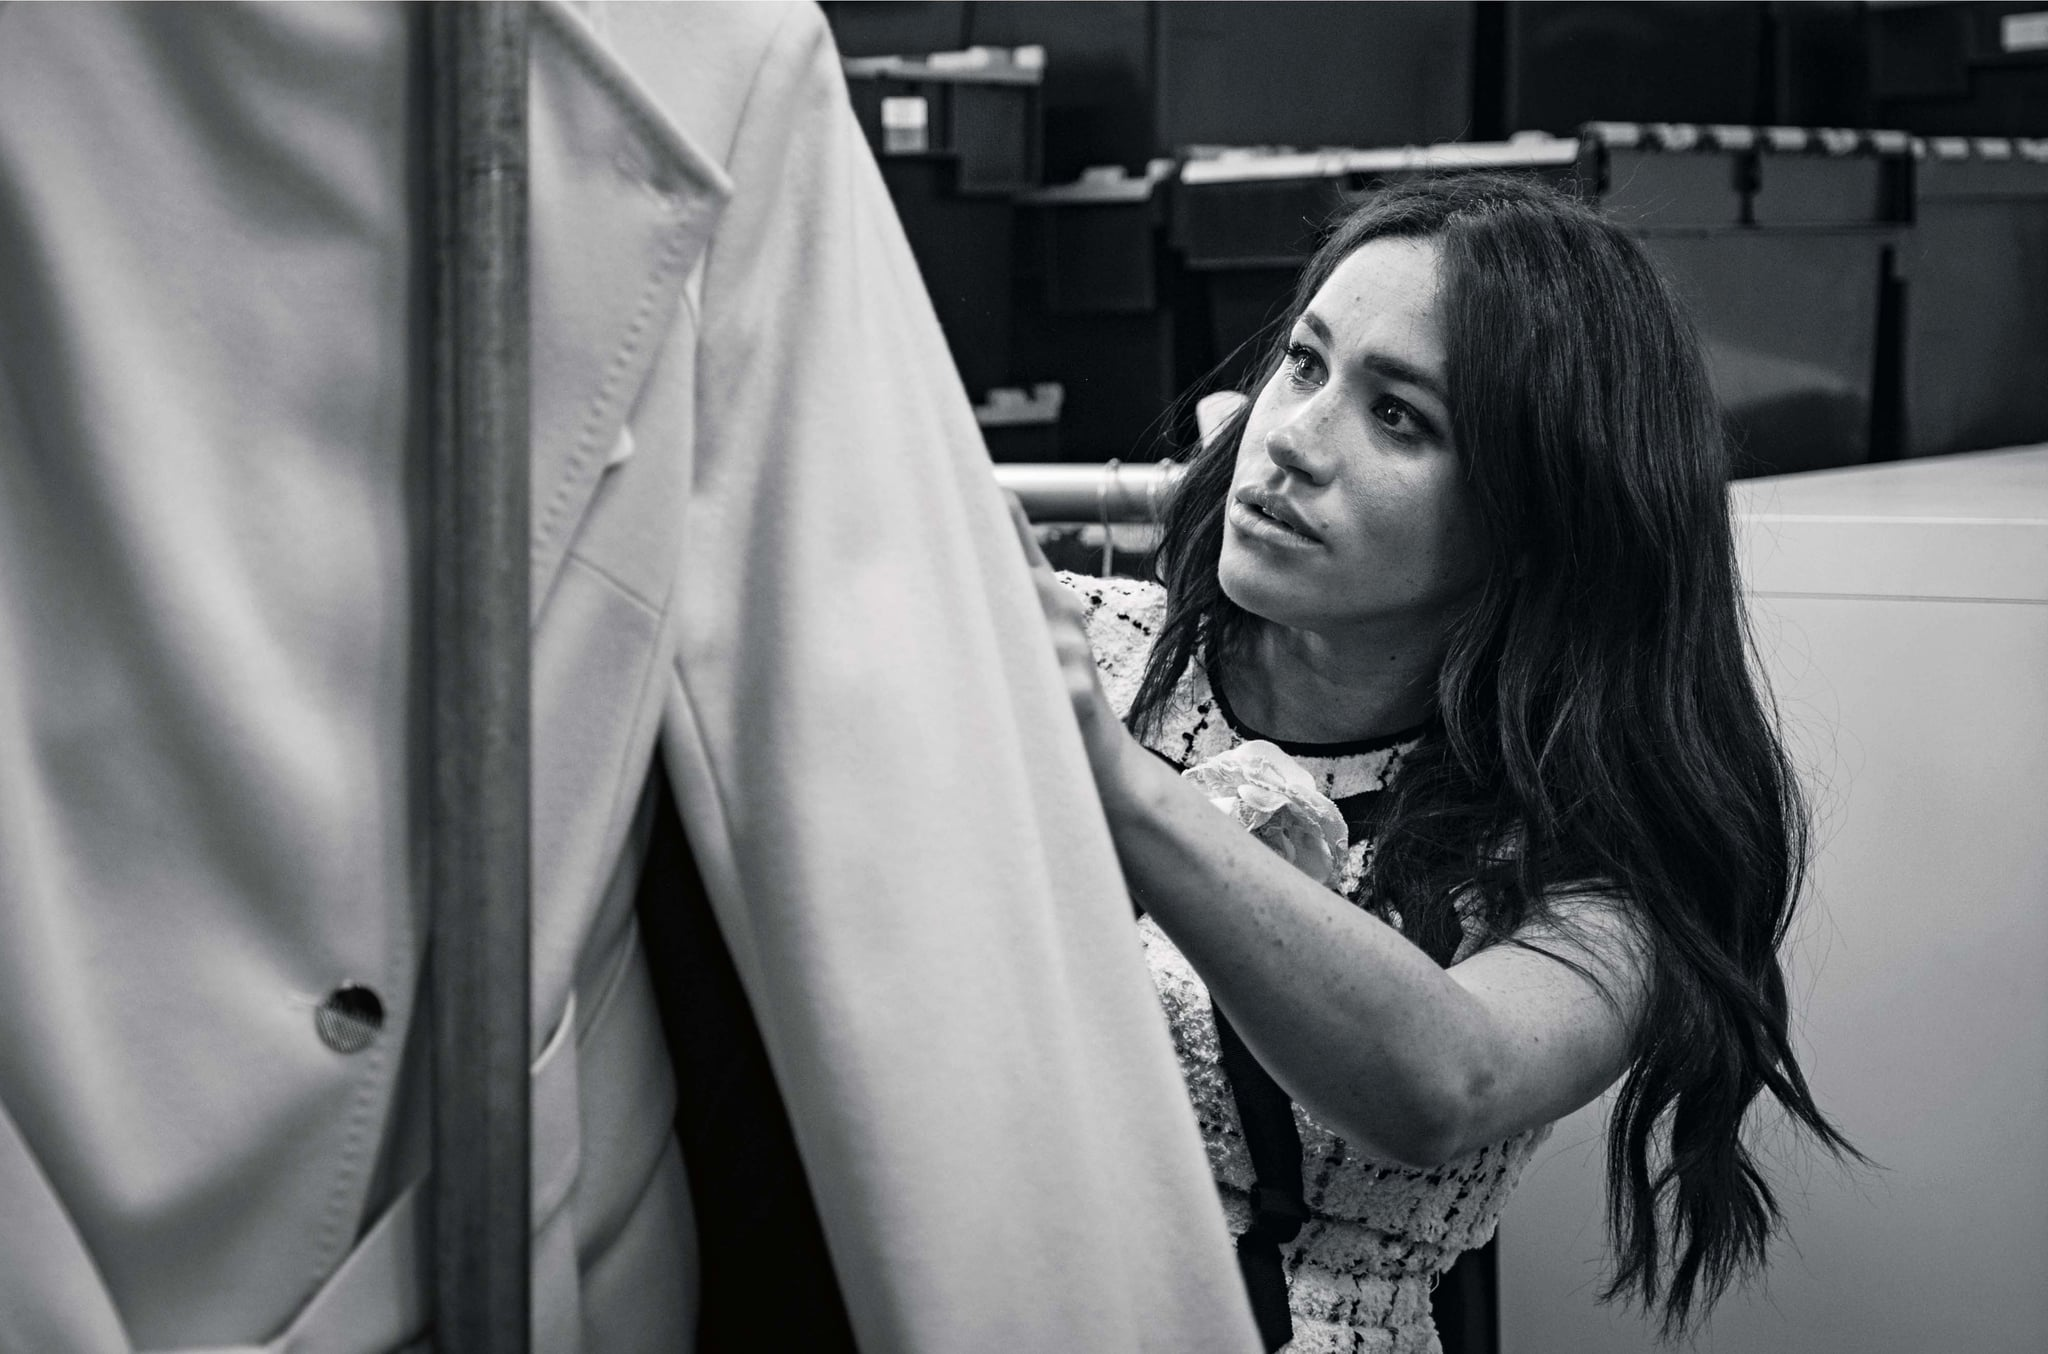 This undated handout photo issued on July 28, 2019 by Kensington Palace shows Britain's Meghan, Duchess of Sussex, Patron of Smart Works, in the workroom of the Smart Works London office. - Prince Harry's wife Meghan will guest edit the September issue of iconic fashion magazine British Vogue, which will see her in